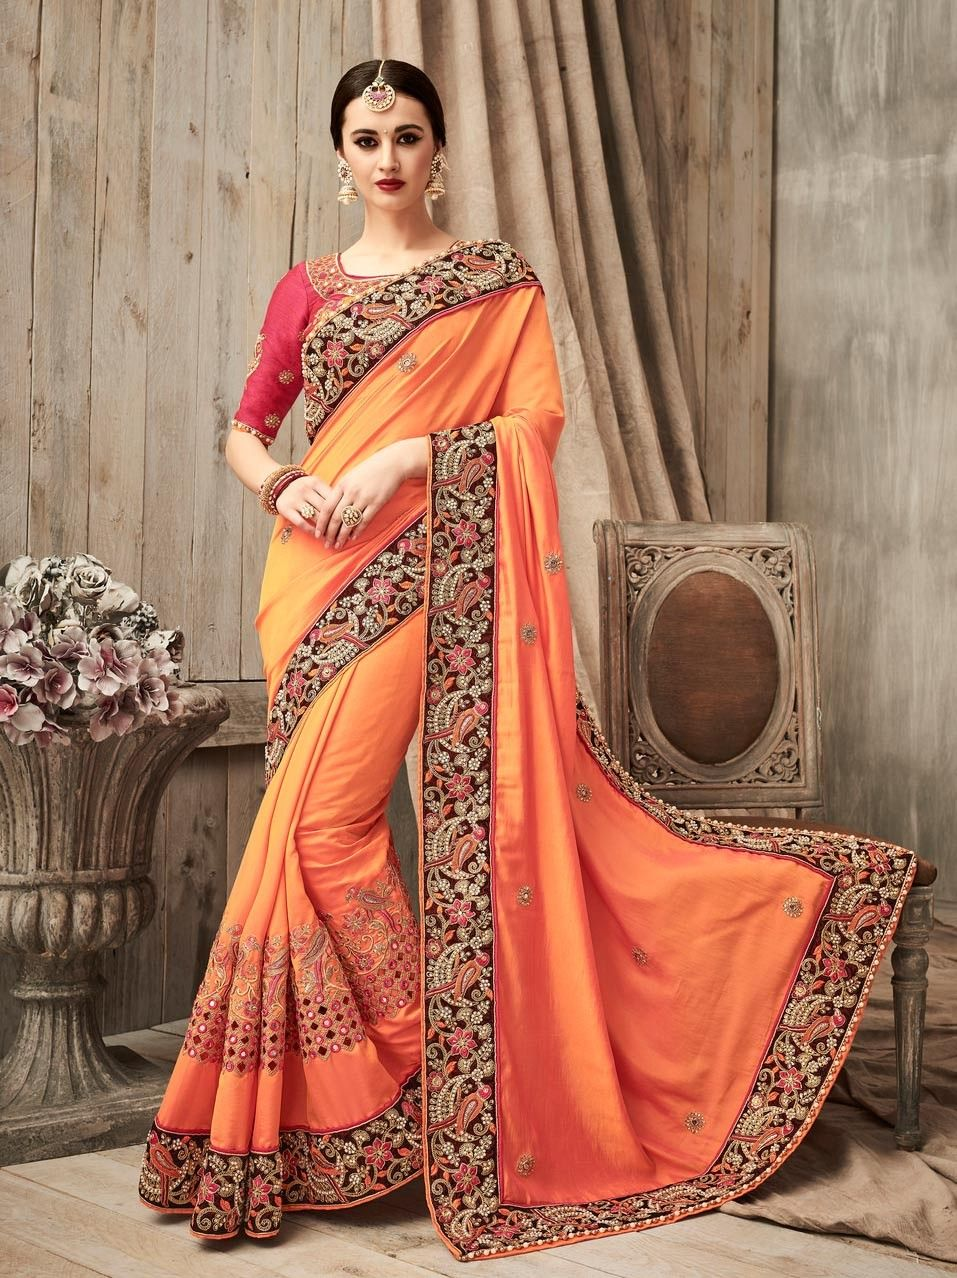 f2d8936495 Designer orange art silk Indian heavy lace border wedding wear sari with  mirror work